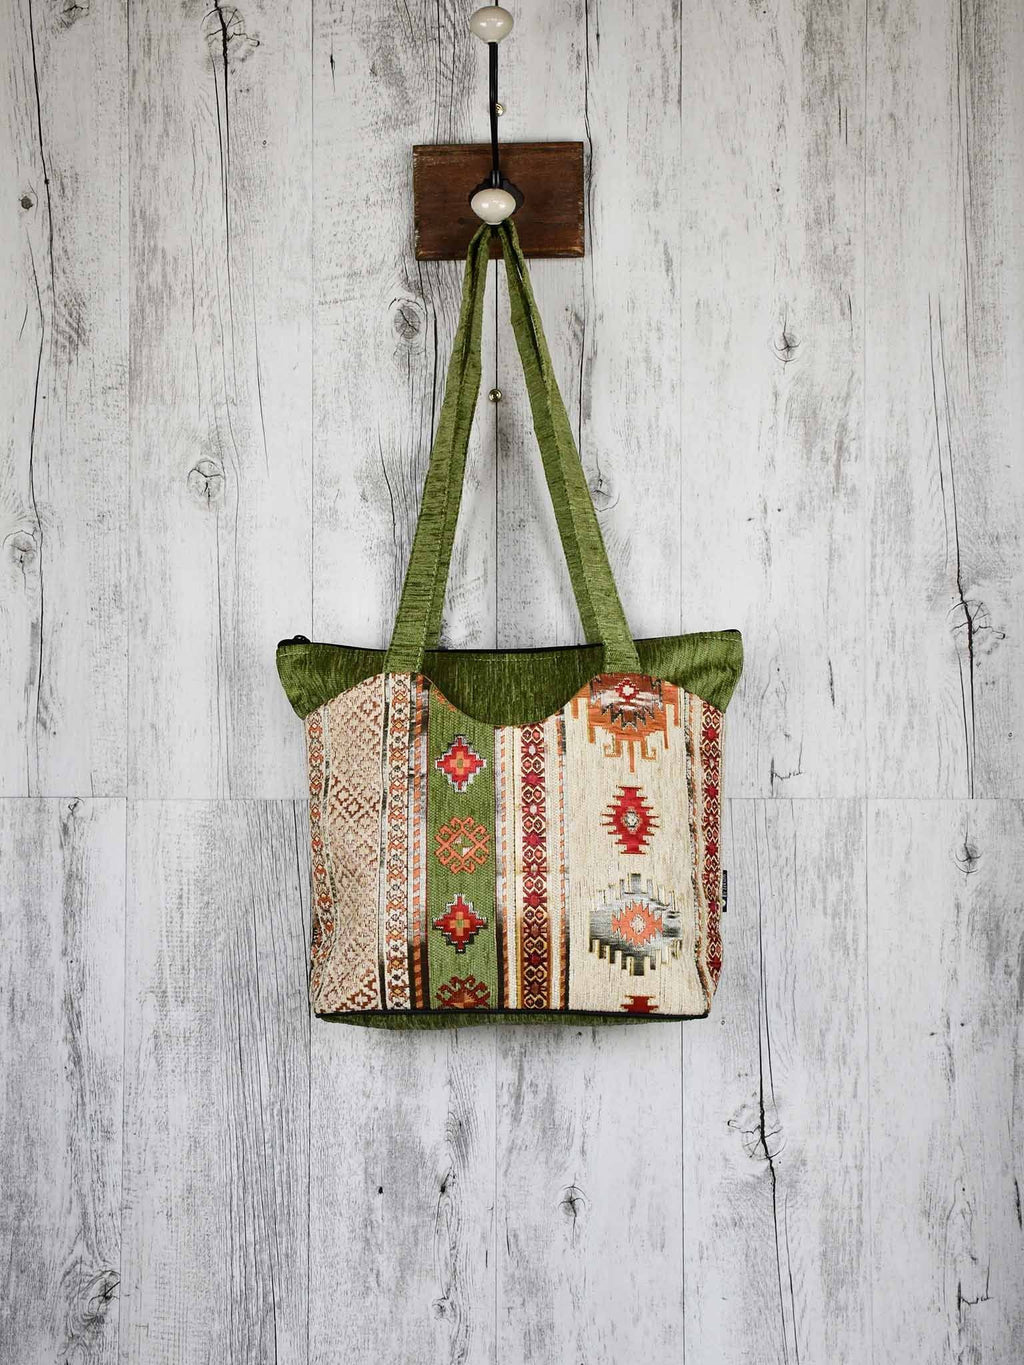 Turkish Handbag Tote Aztec Green Beige Textile Sydney Grand Bazaar